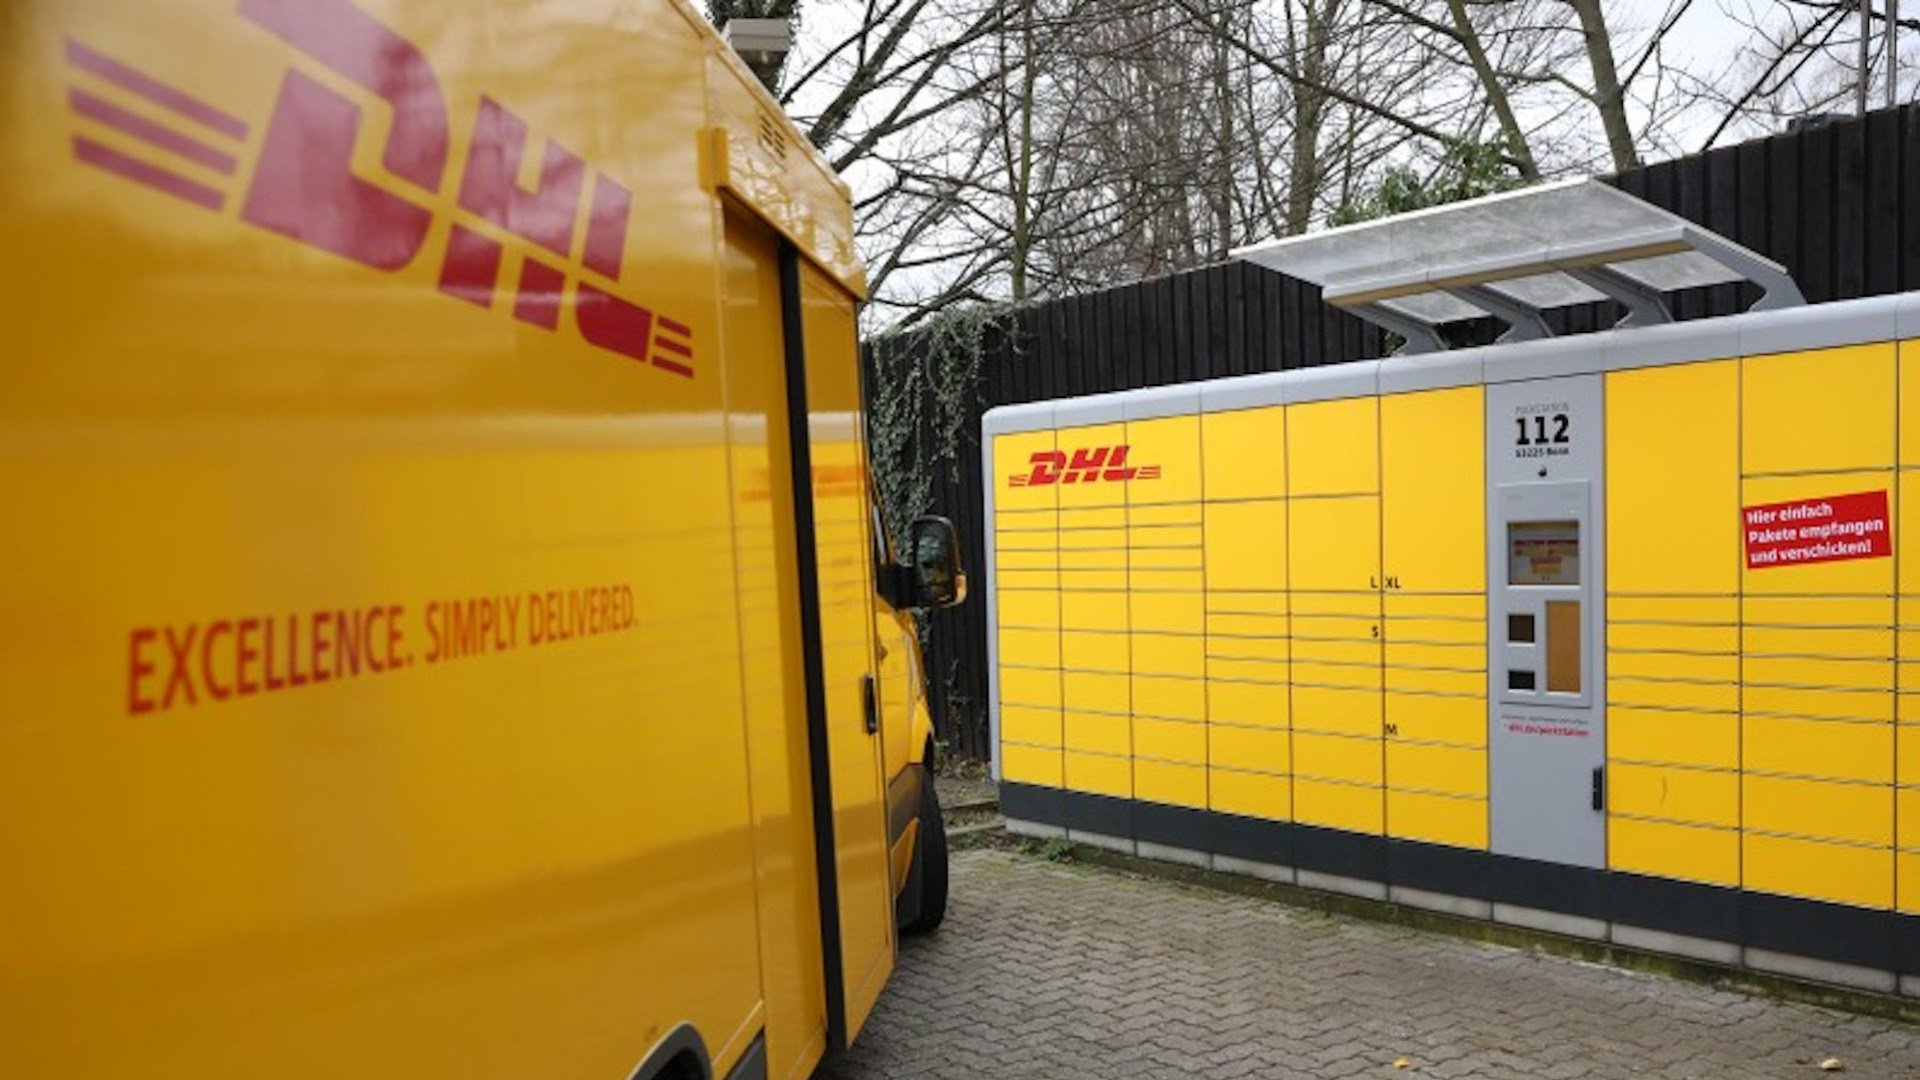 Paket, Post, DHL, Packstation, Paketkasten